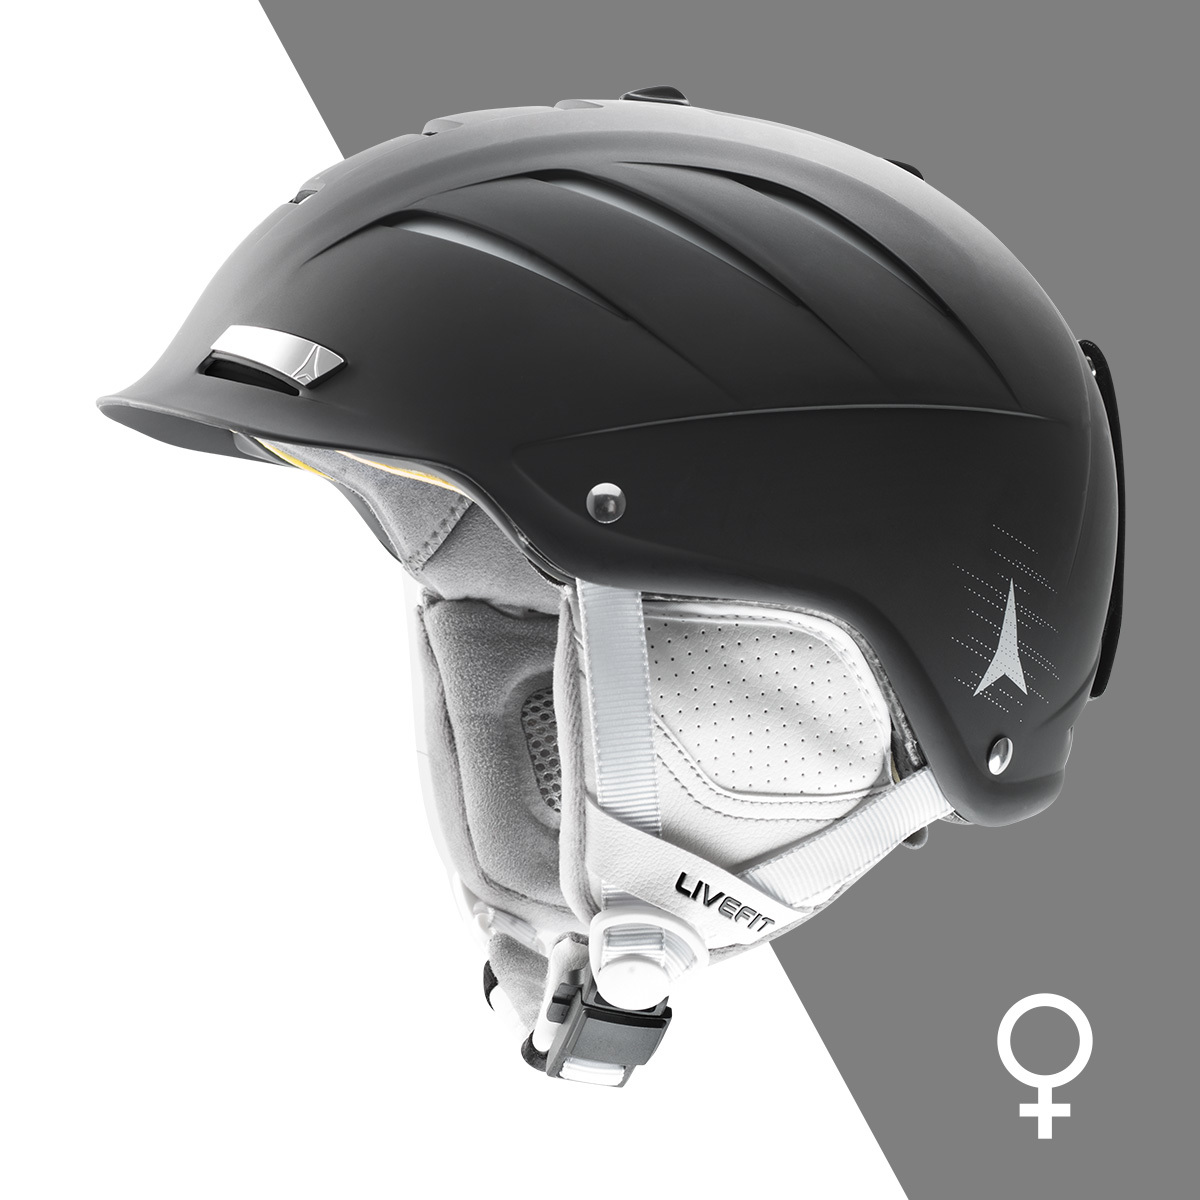 Qsport Atomic Casque Ou Masque De Ski